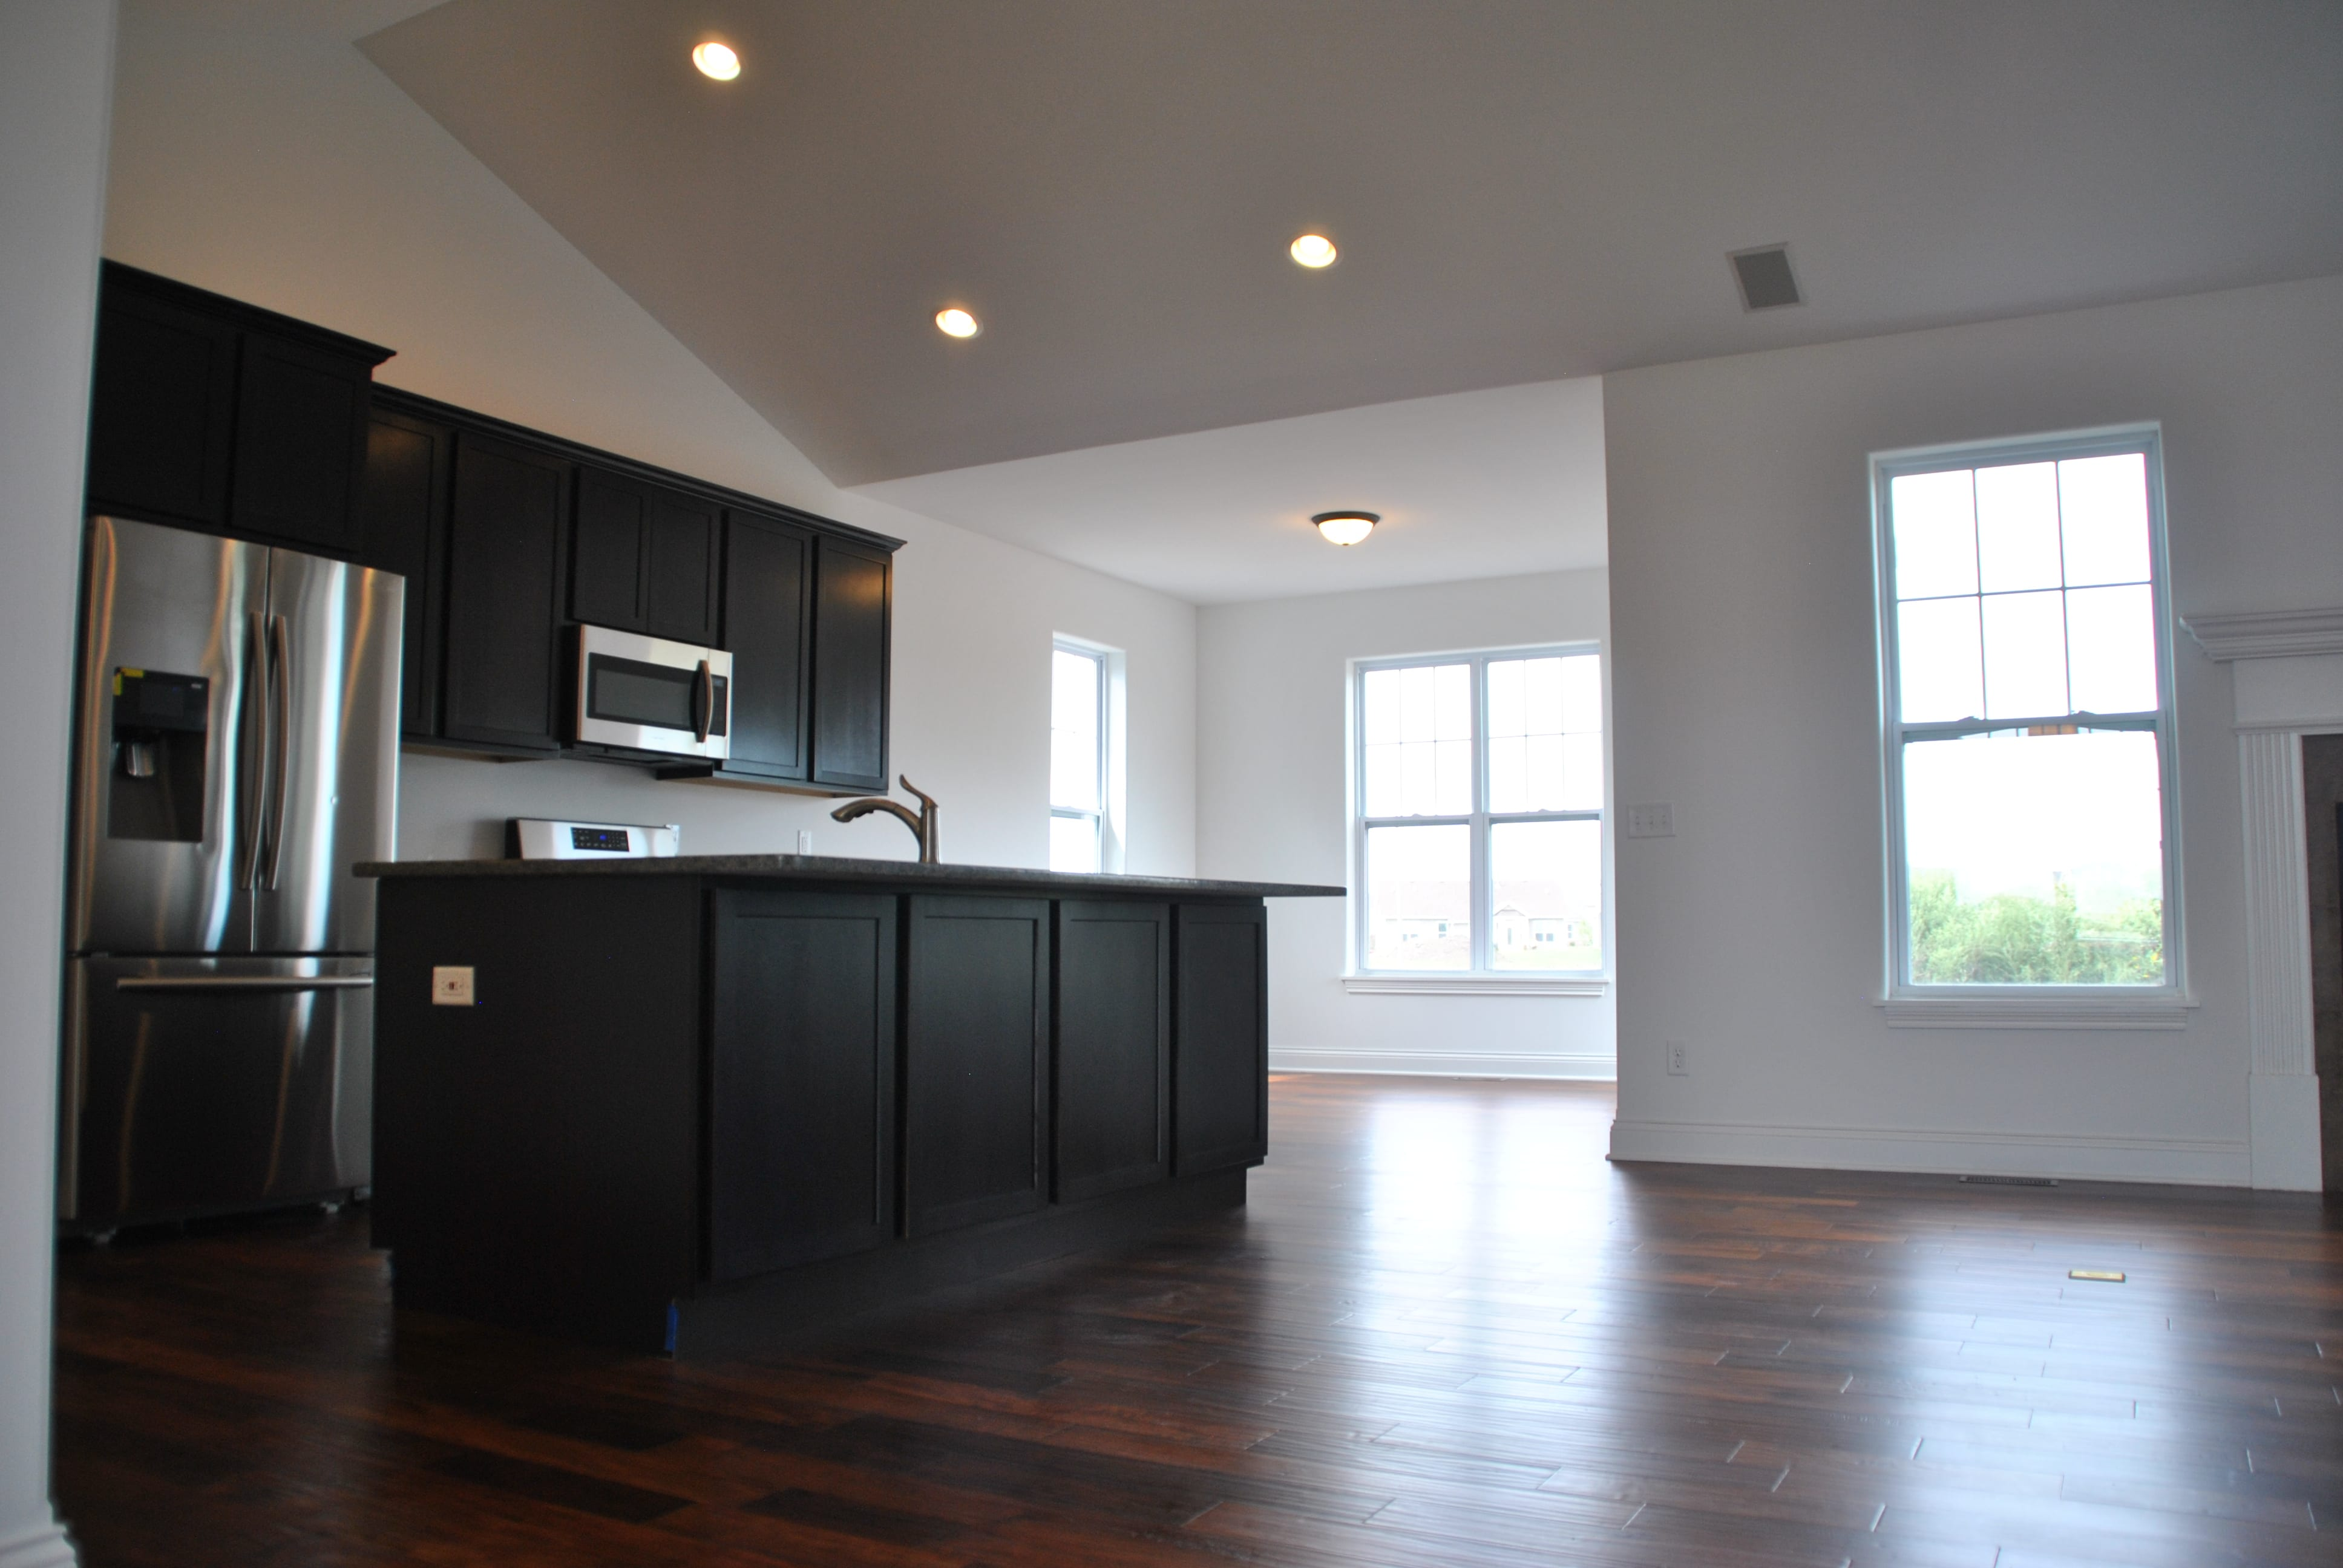 Kitchen with dark cabinets and acacia teak (dark colored) hardwood floor